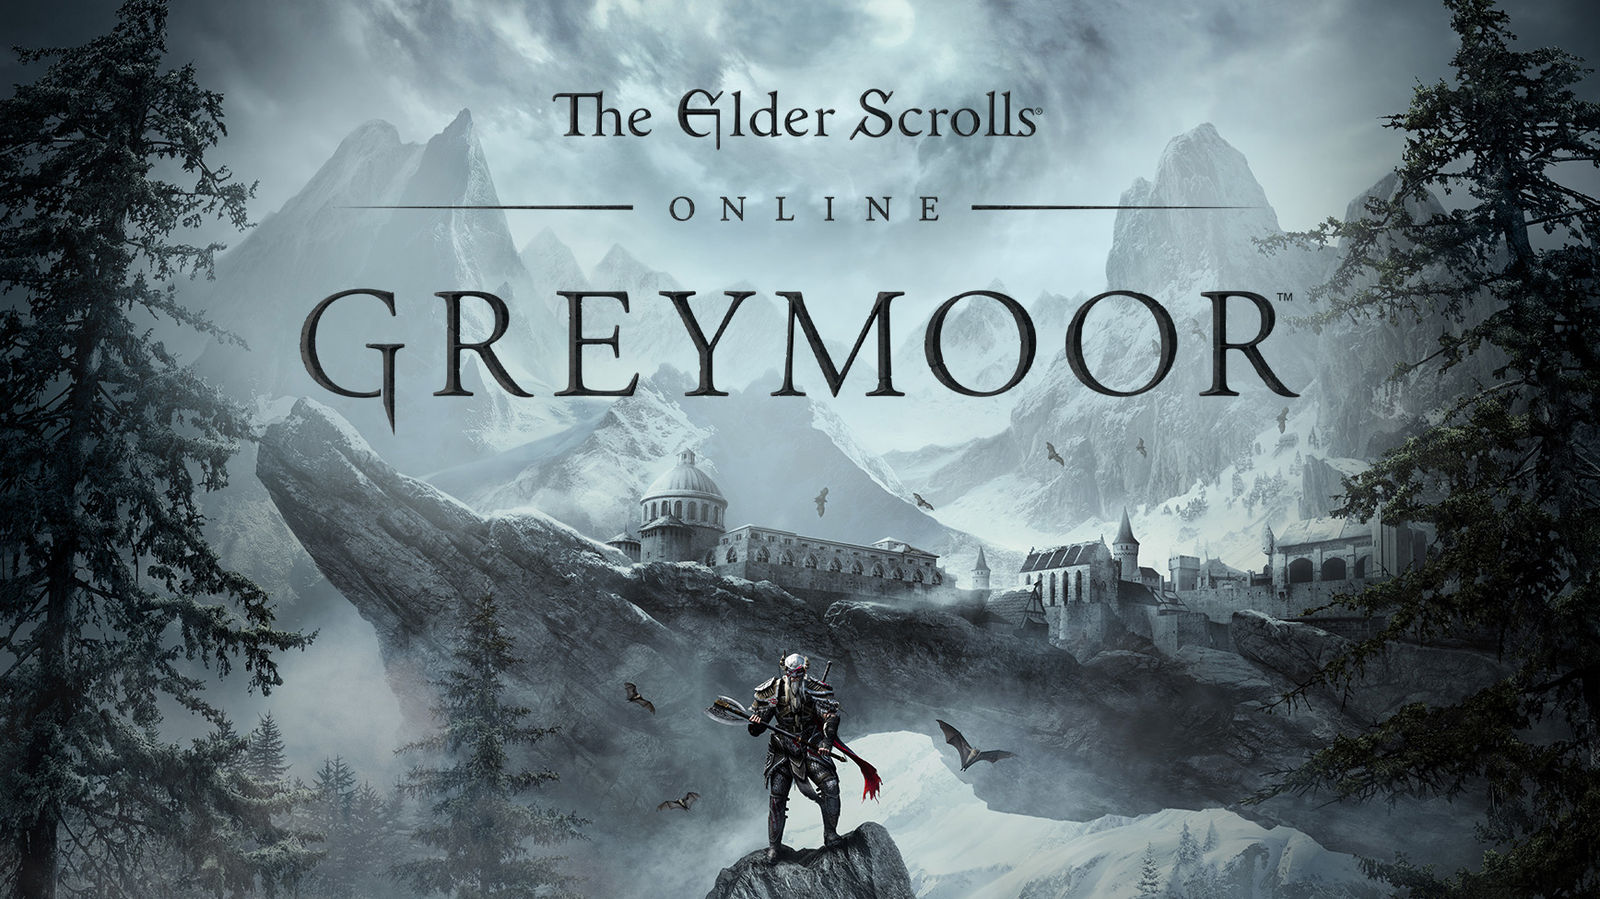 z The Elder Scrolls Online Greymoor Upgrade (NON Steam)